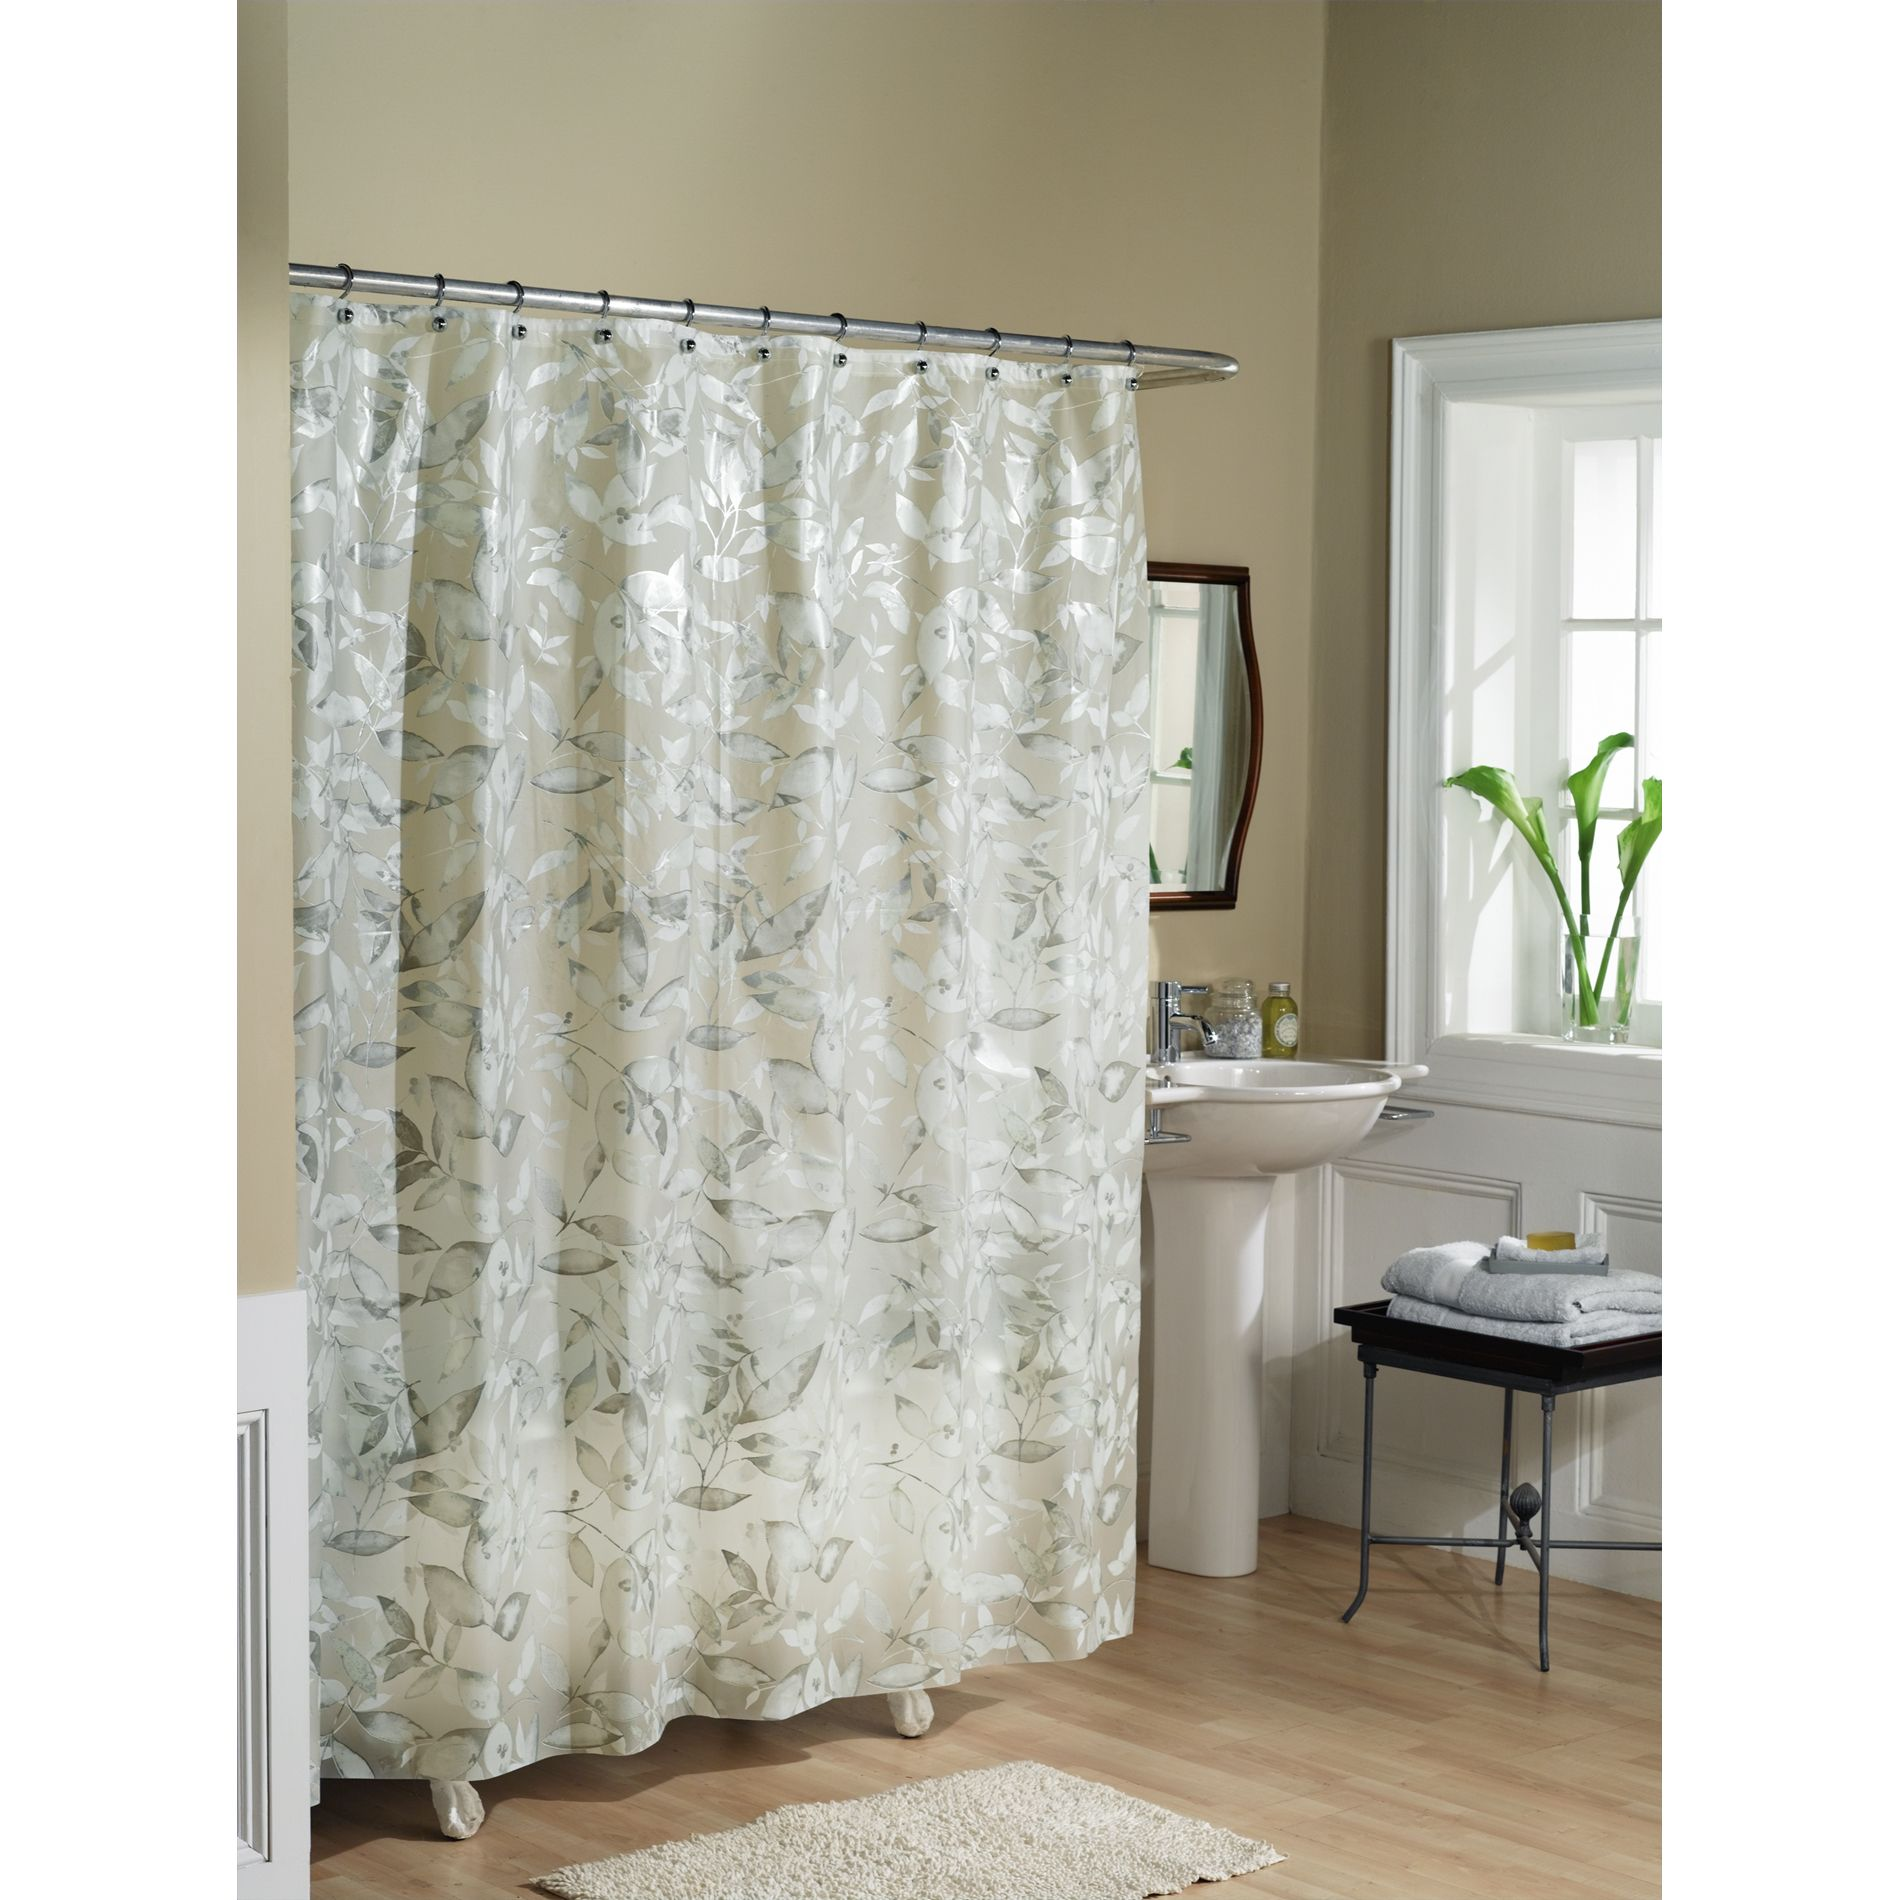 Bathroom Shower Curtains And Accessories Essential Home Shower Curtain Tea Leaves Vinyl Peva Home